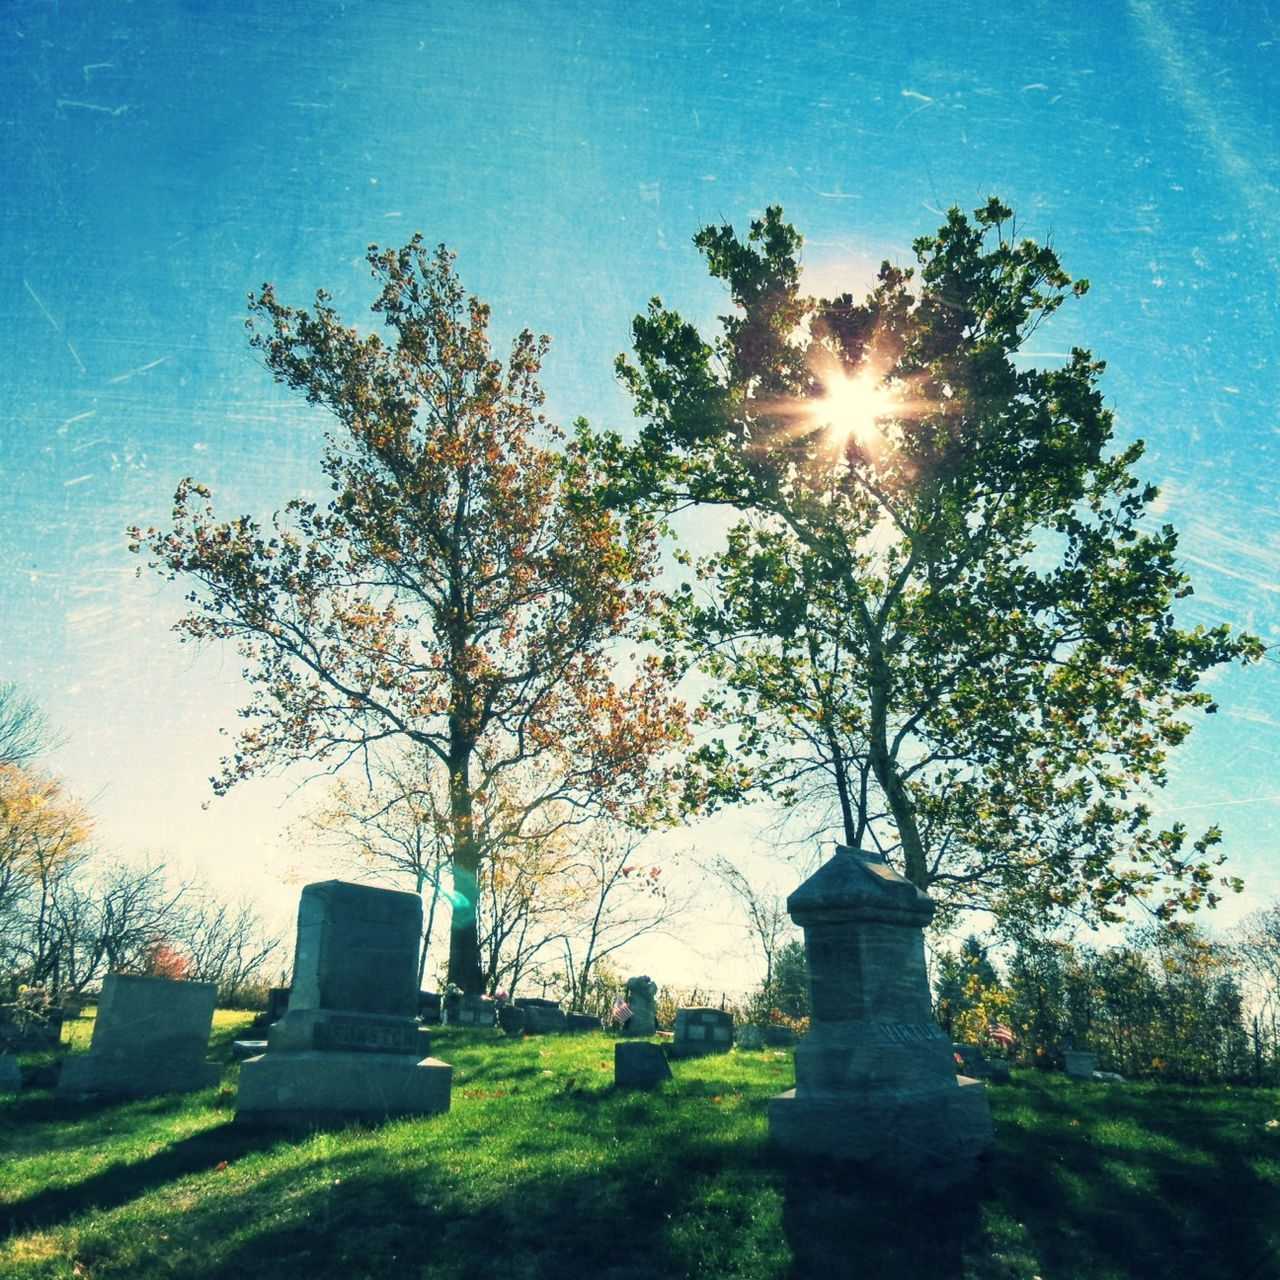 cemetery, tombstone, memorial, gravestone, tree, sunlight, graveyard, lens flare, no people, sunbeam, tranquility, grass, nature, sun, day, outdoors, landscape, sky, clear sky, beauty in nature